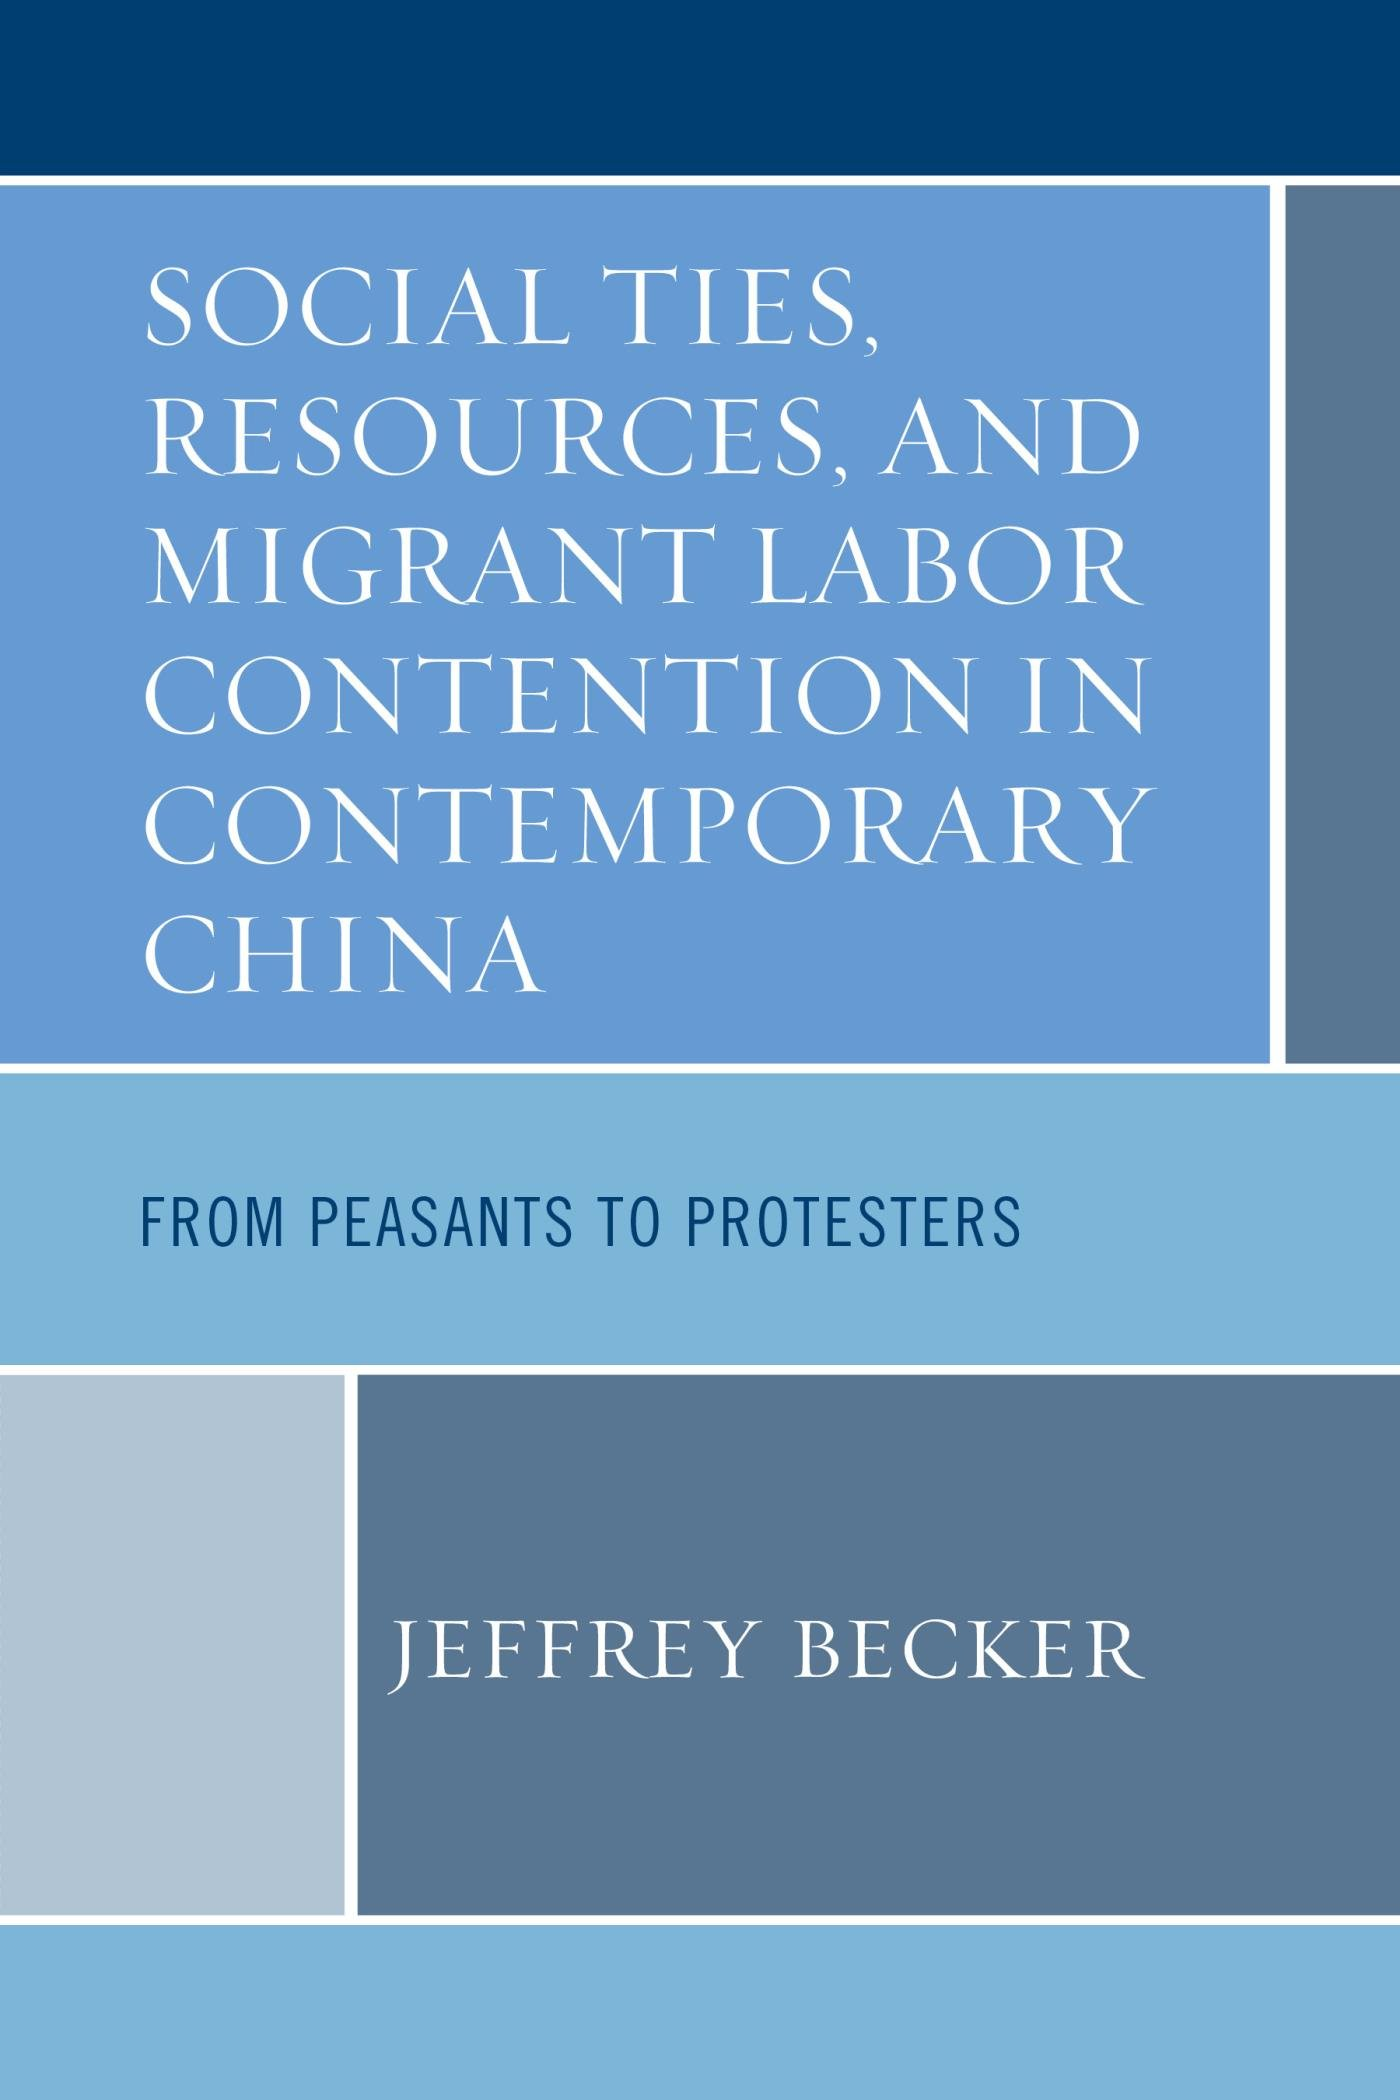 Social Ties, Resources, and Migrant Labor Contention in Contemporary China: From Peasants to Protesters